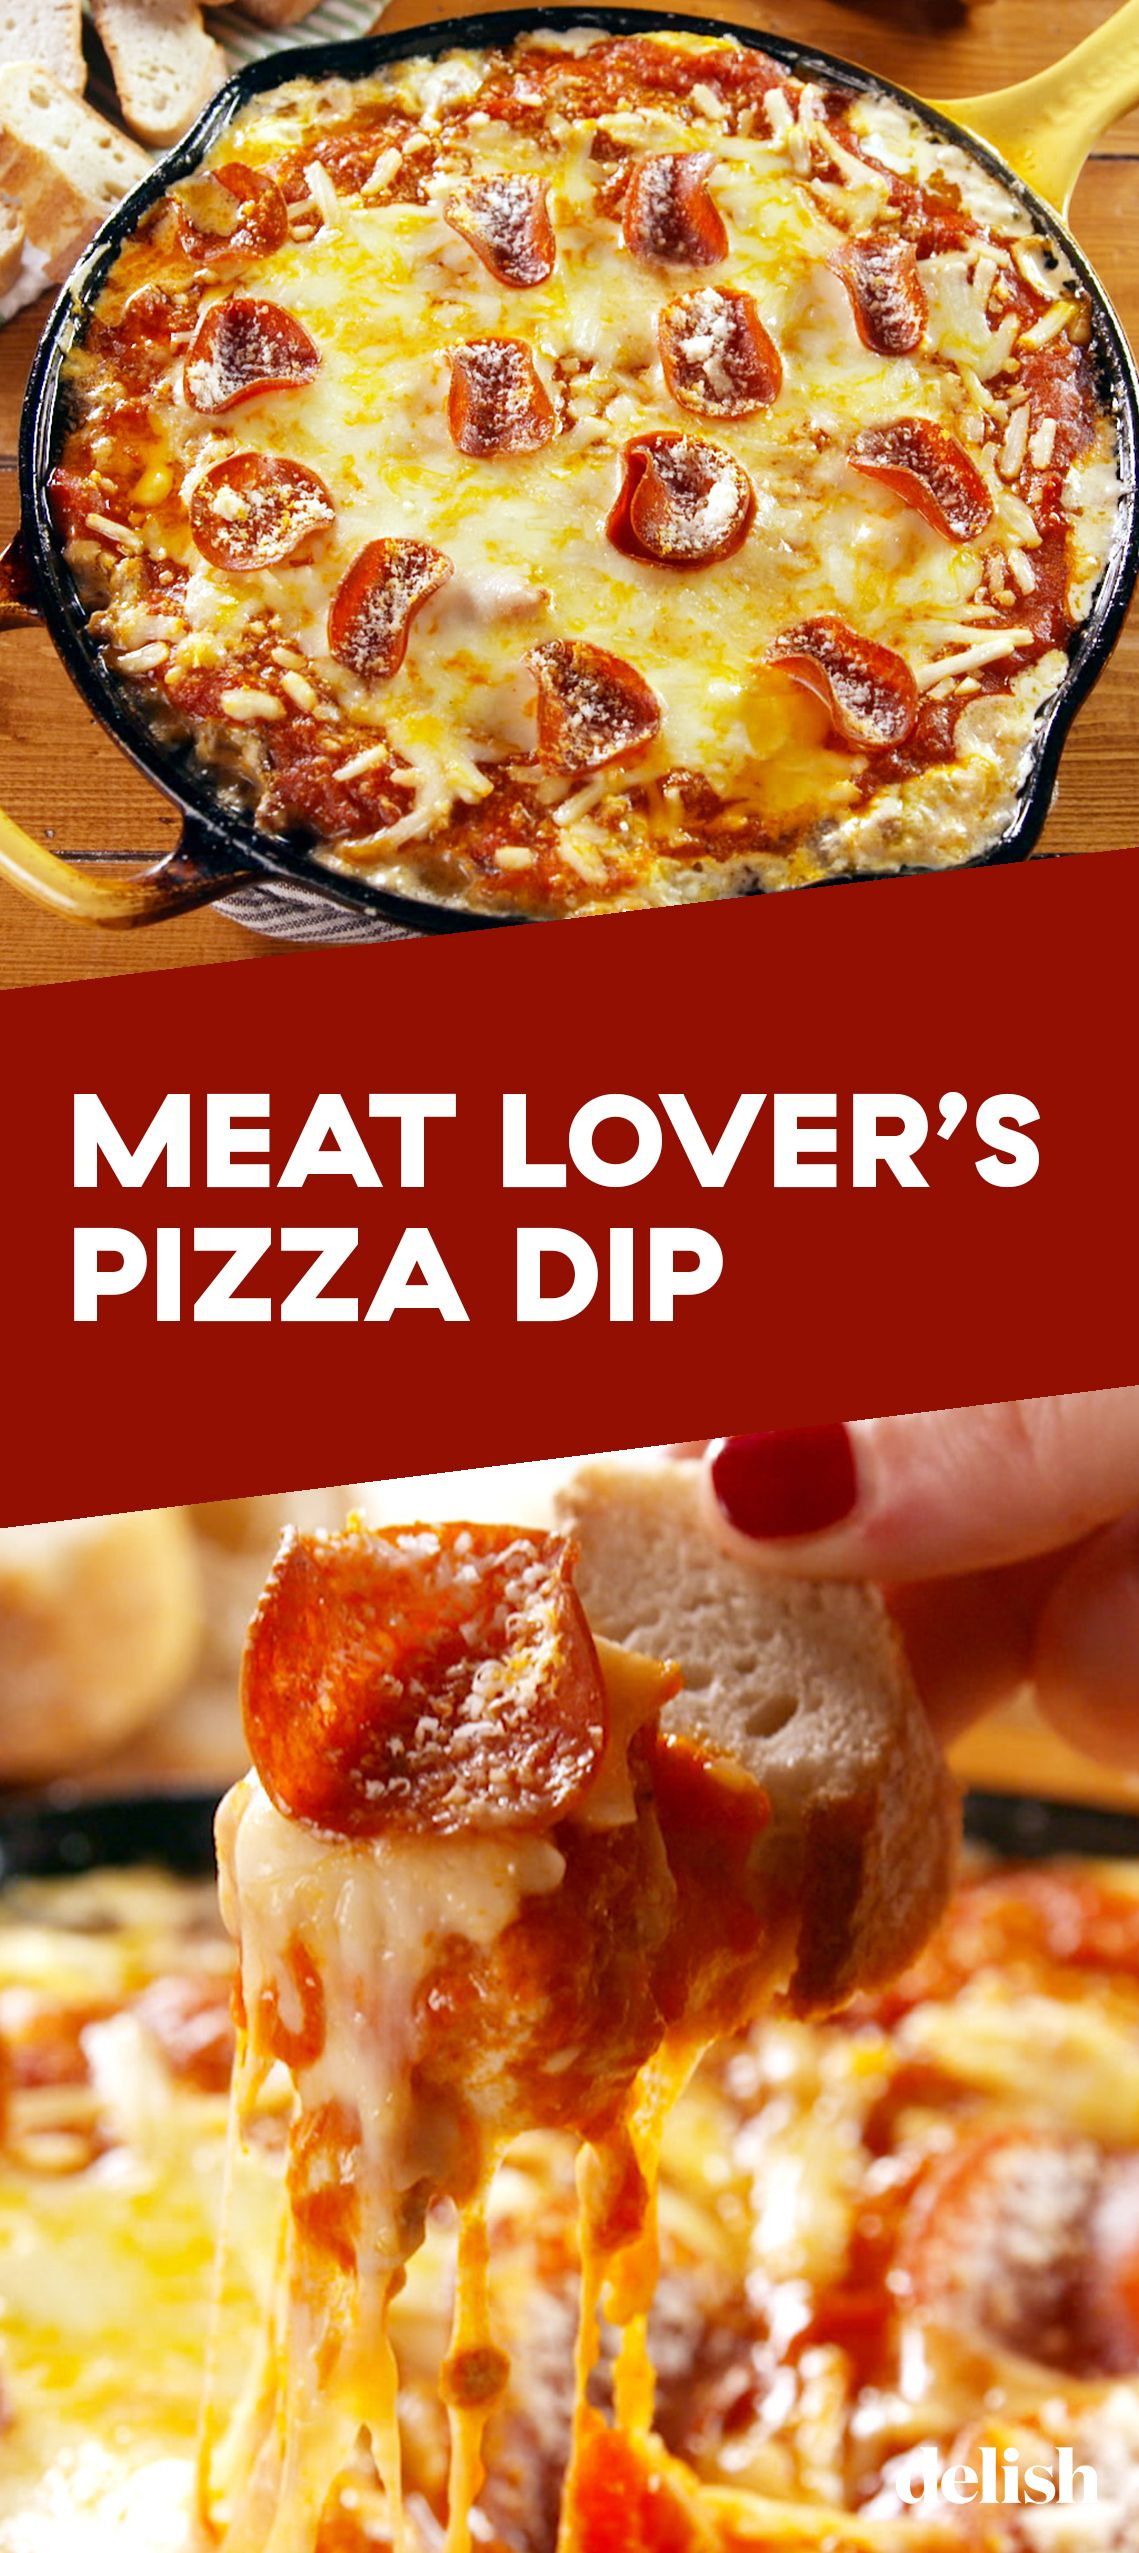 Meat Lover S Pizza Dip Pizza Dipping Meat Lovers Pizza Dip Meat Appetizers